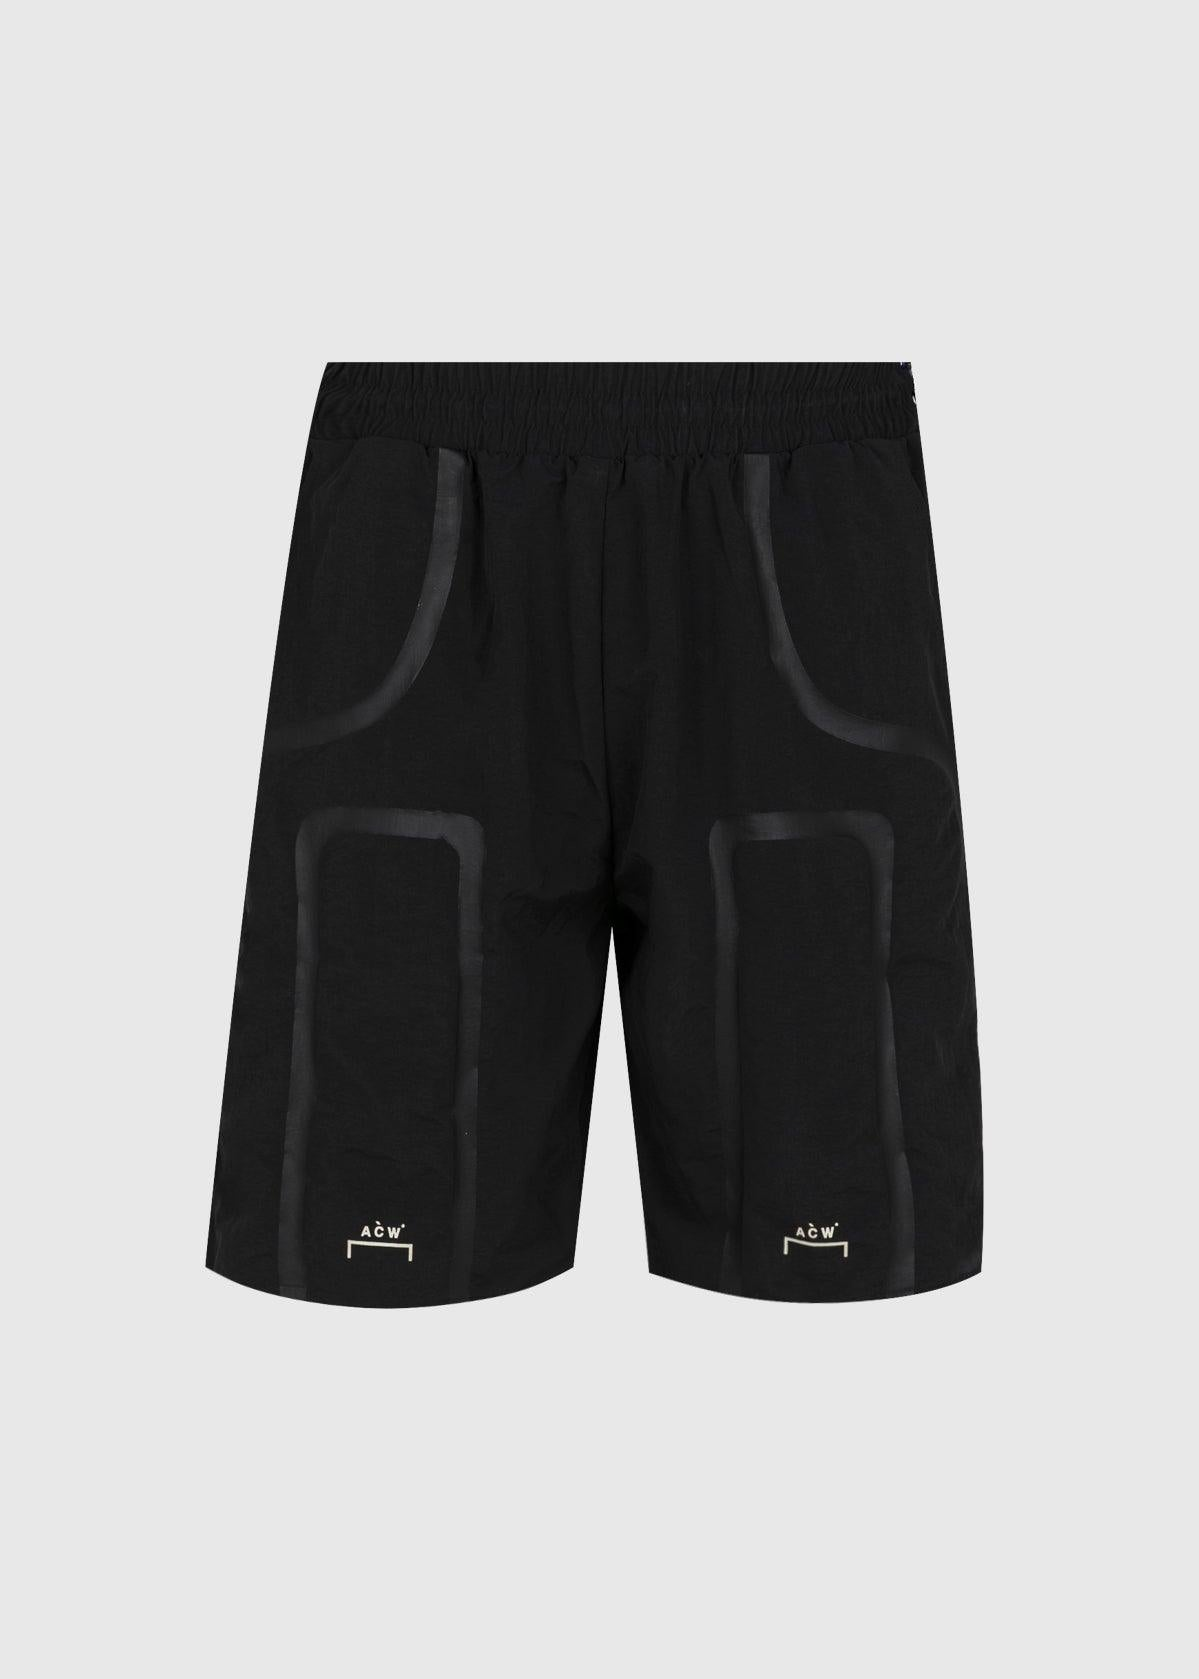 A-COLD-WALL*: BRACKET TRACK SHORTS